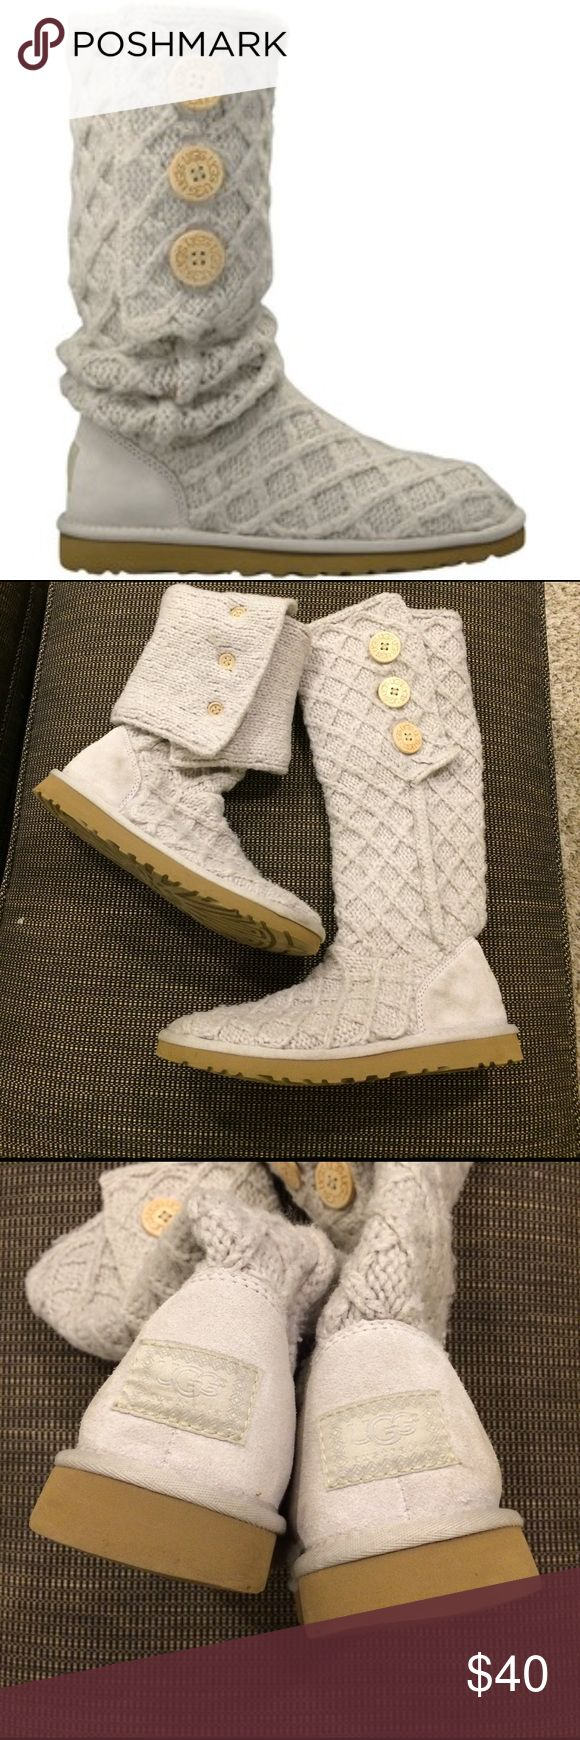 ugg cardy lattice gray knit boots size 8 Ugg Boots In great Great used Condition! There Is slight rubbing marks and the bottom back And Some Signs Of Wear - Near Bottom but Hardly Noticeable. Us 8.  A Very Light Gray Color. UGG Shoes Winter & Rain Boots